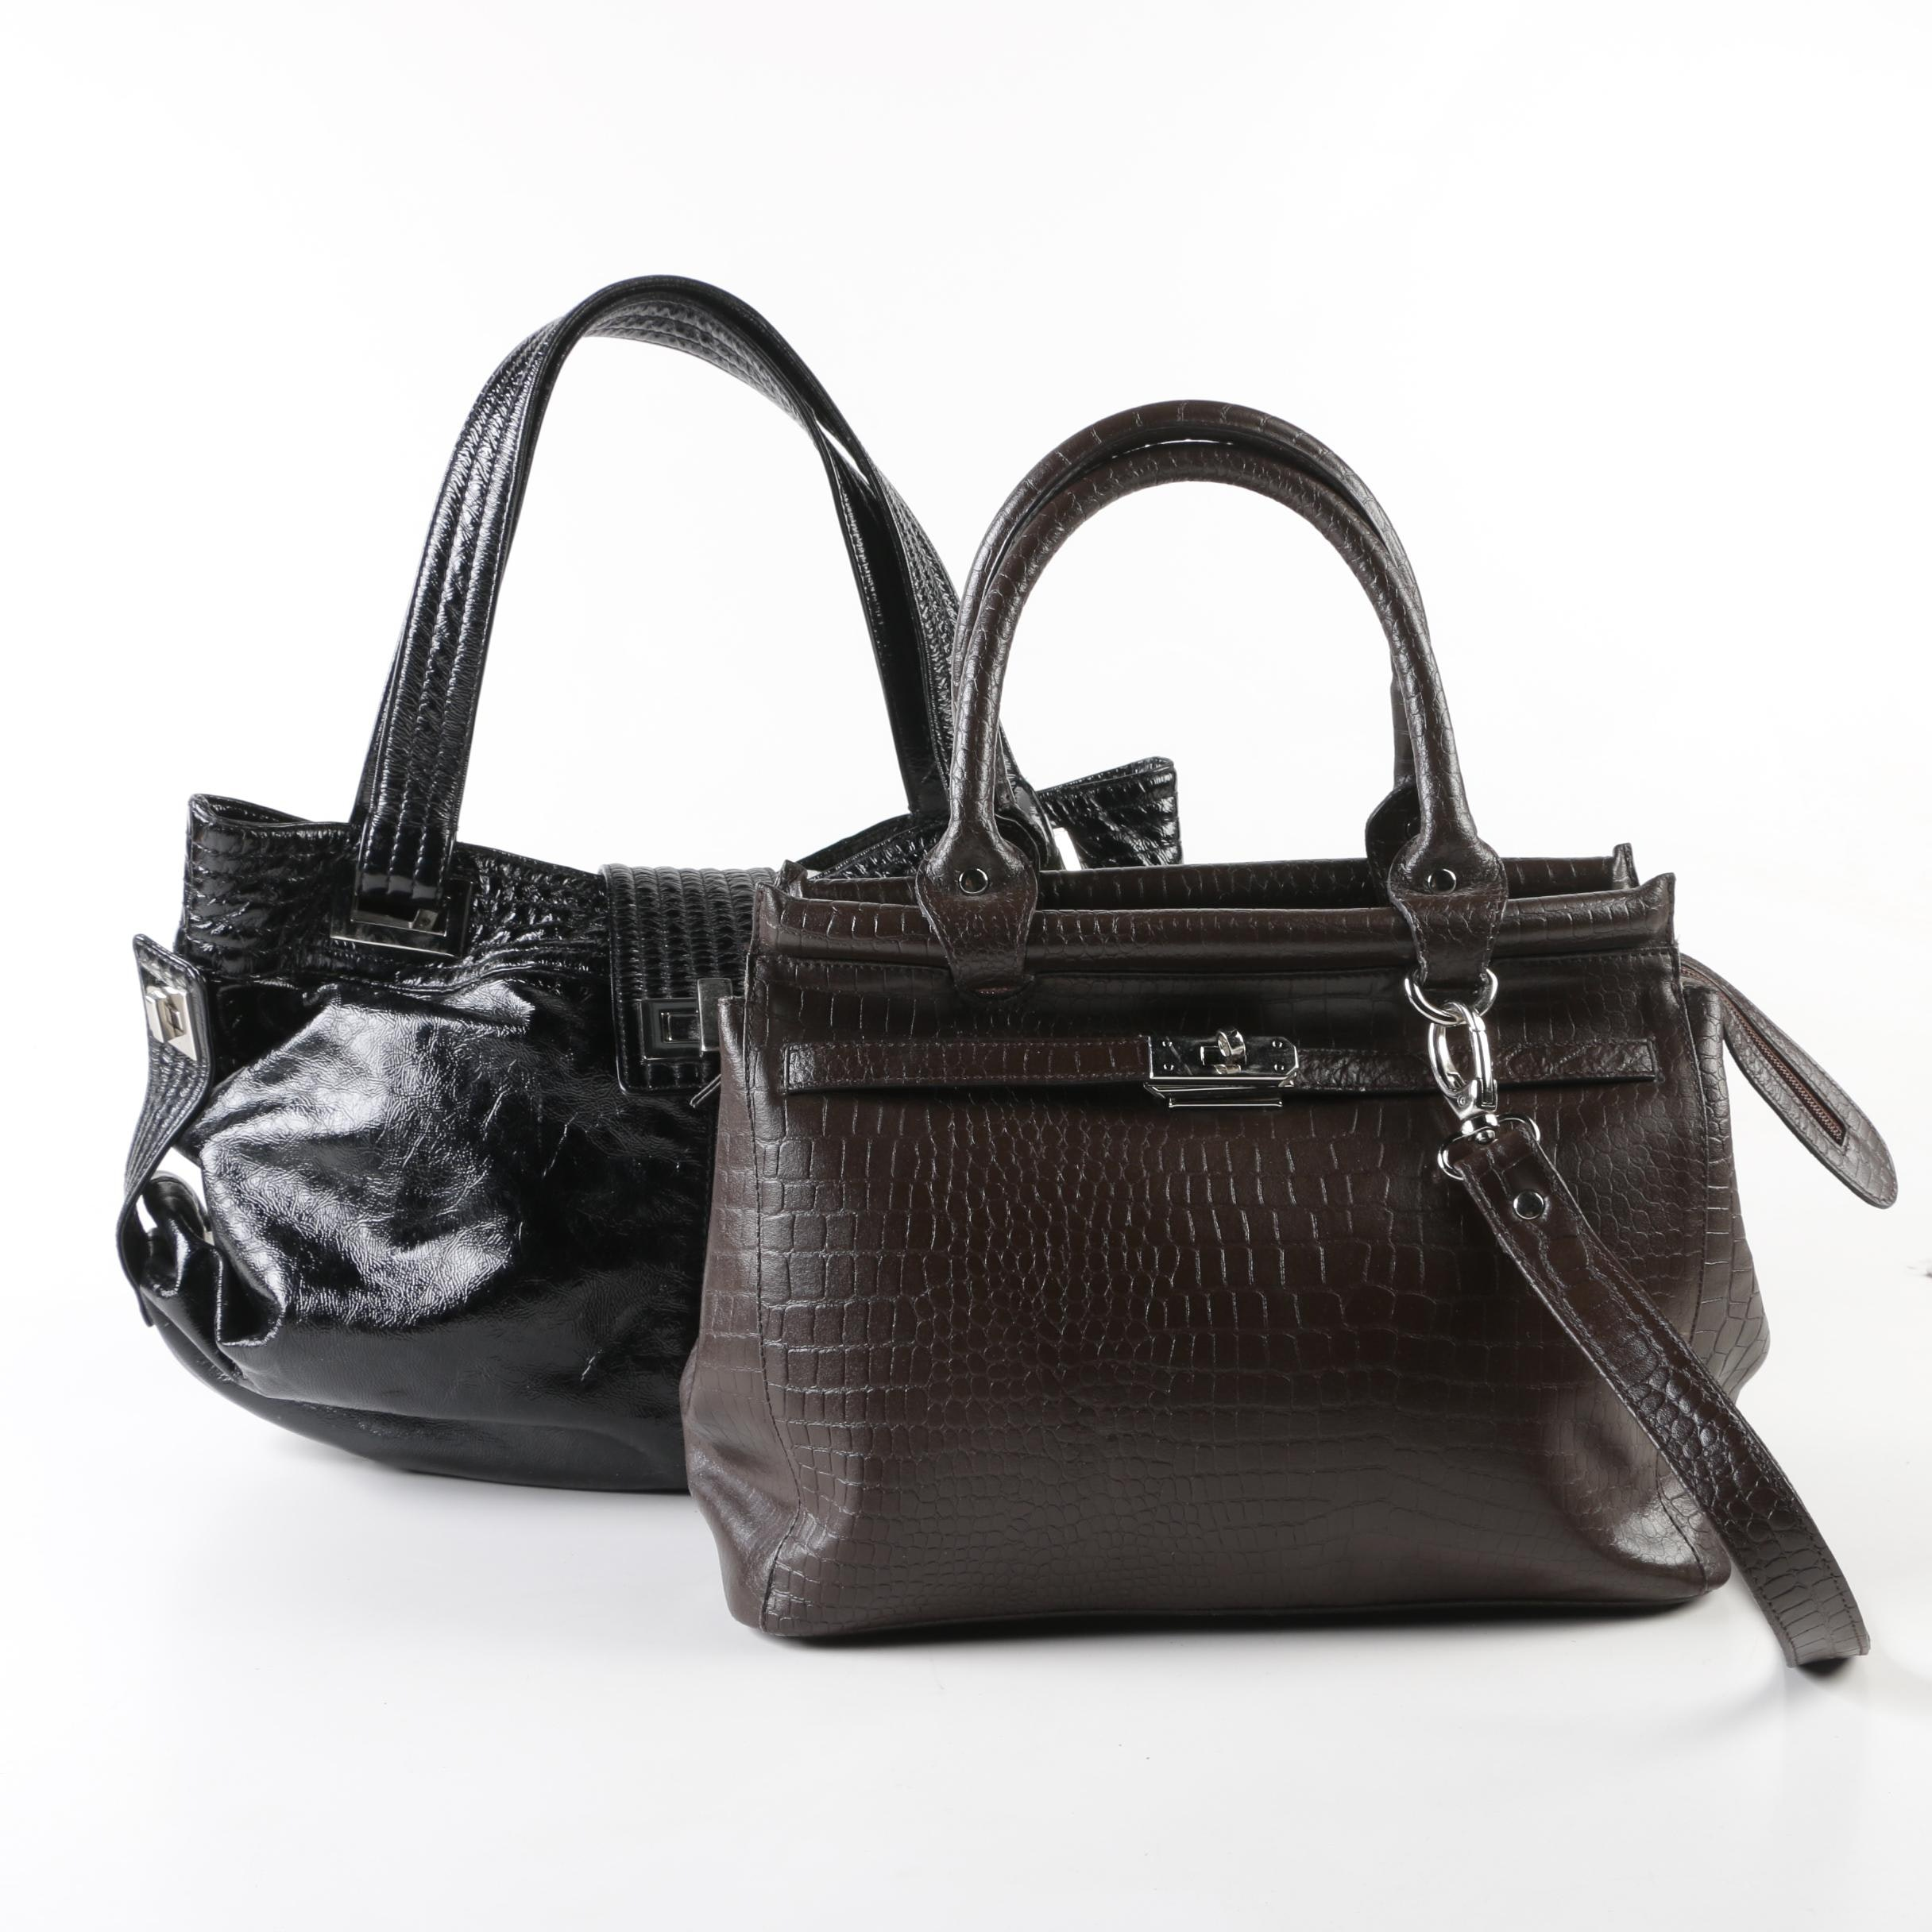 Muska Brown Embossed Leather Satchel and Kooba Black Patent Leather Shoulder Bag